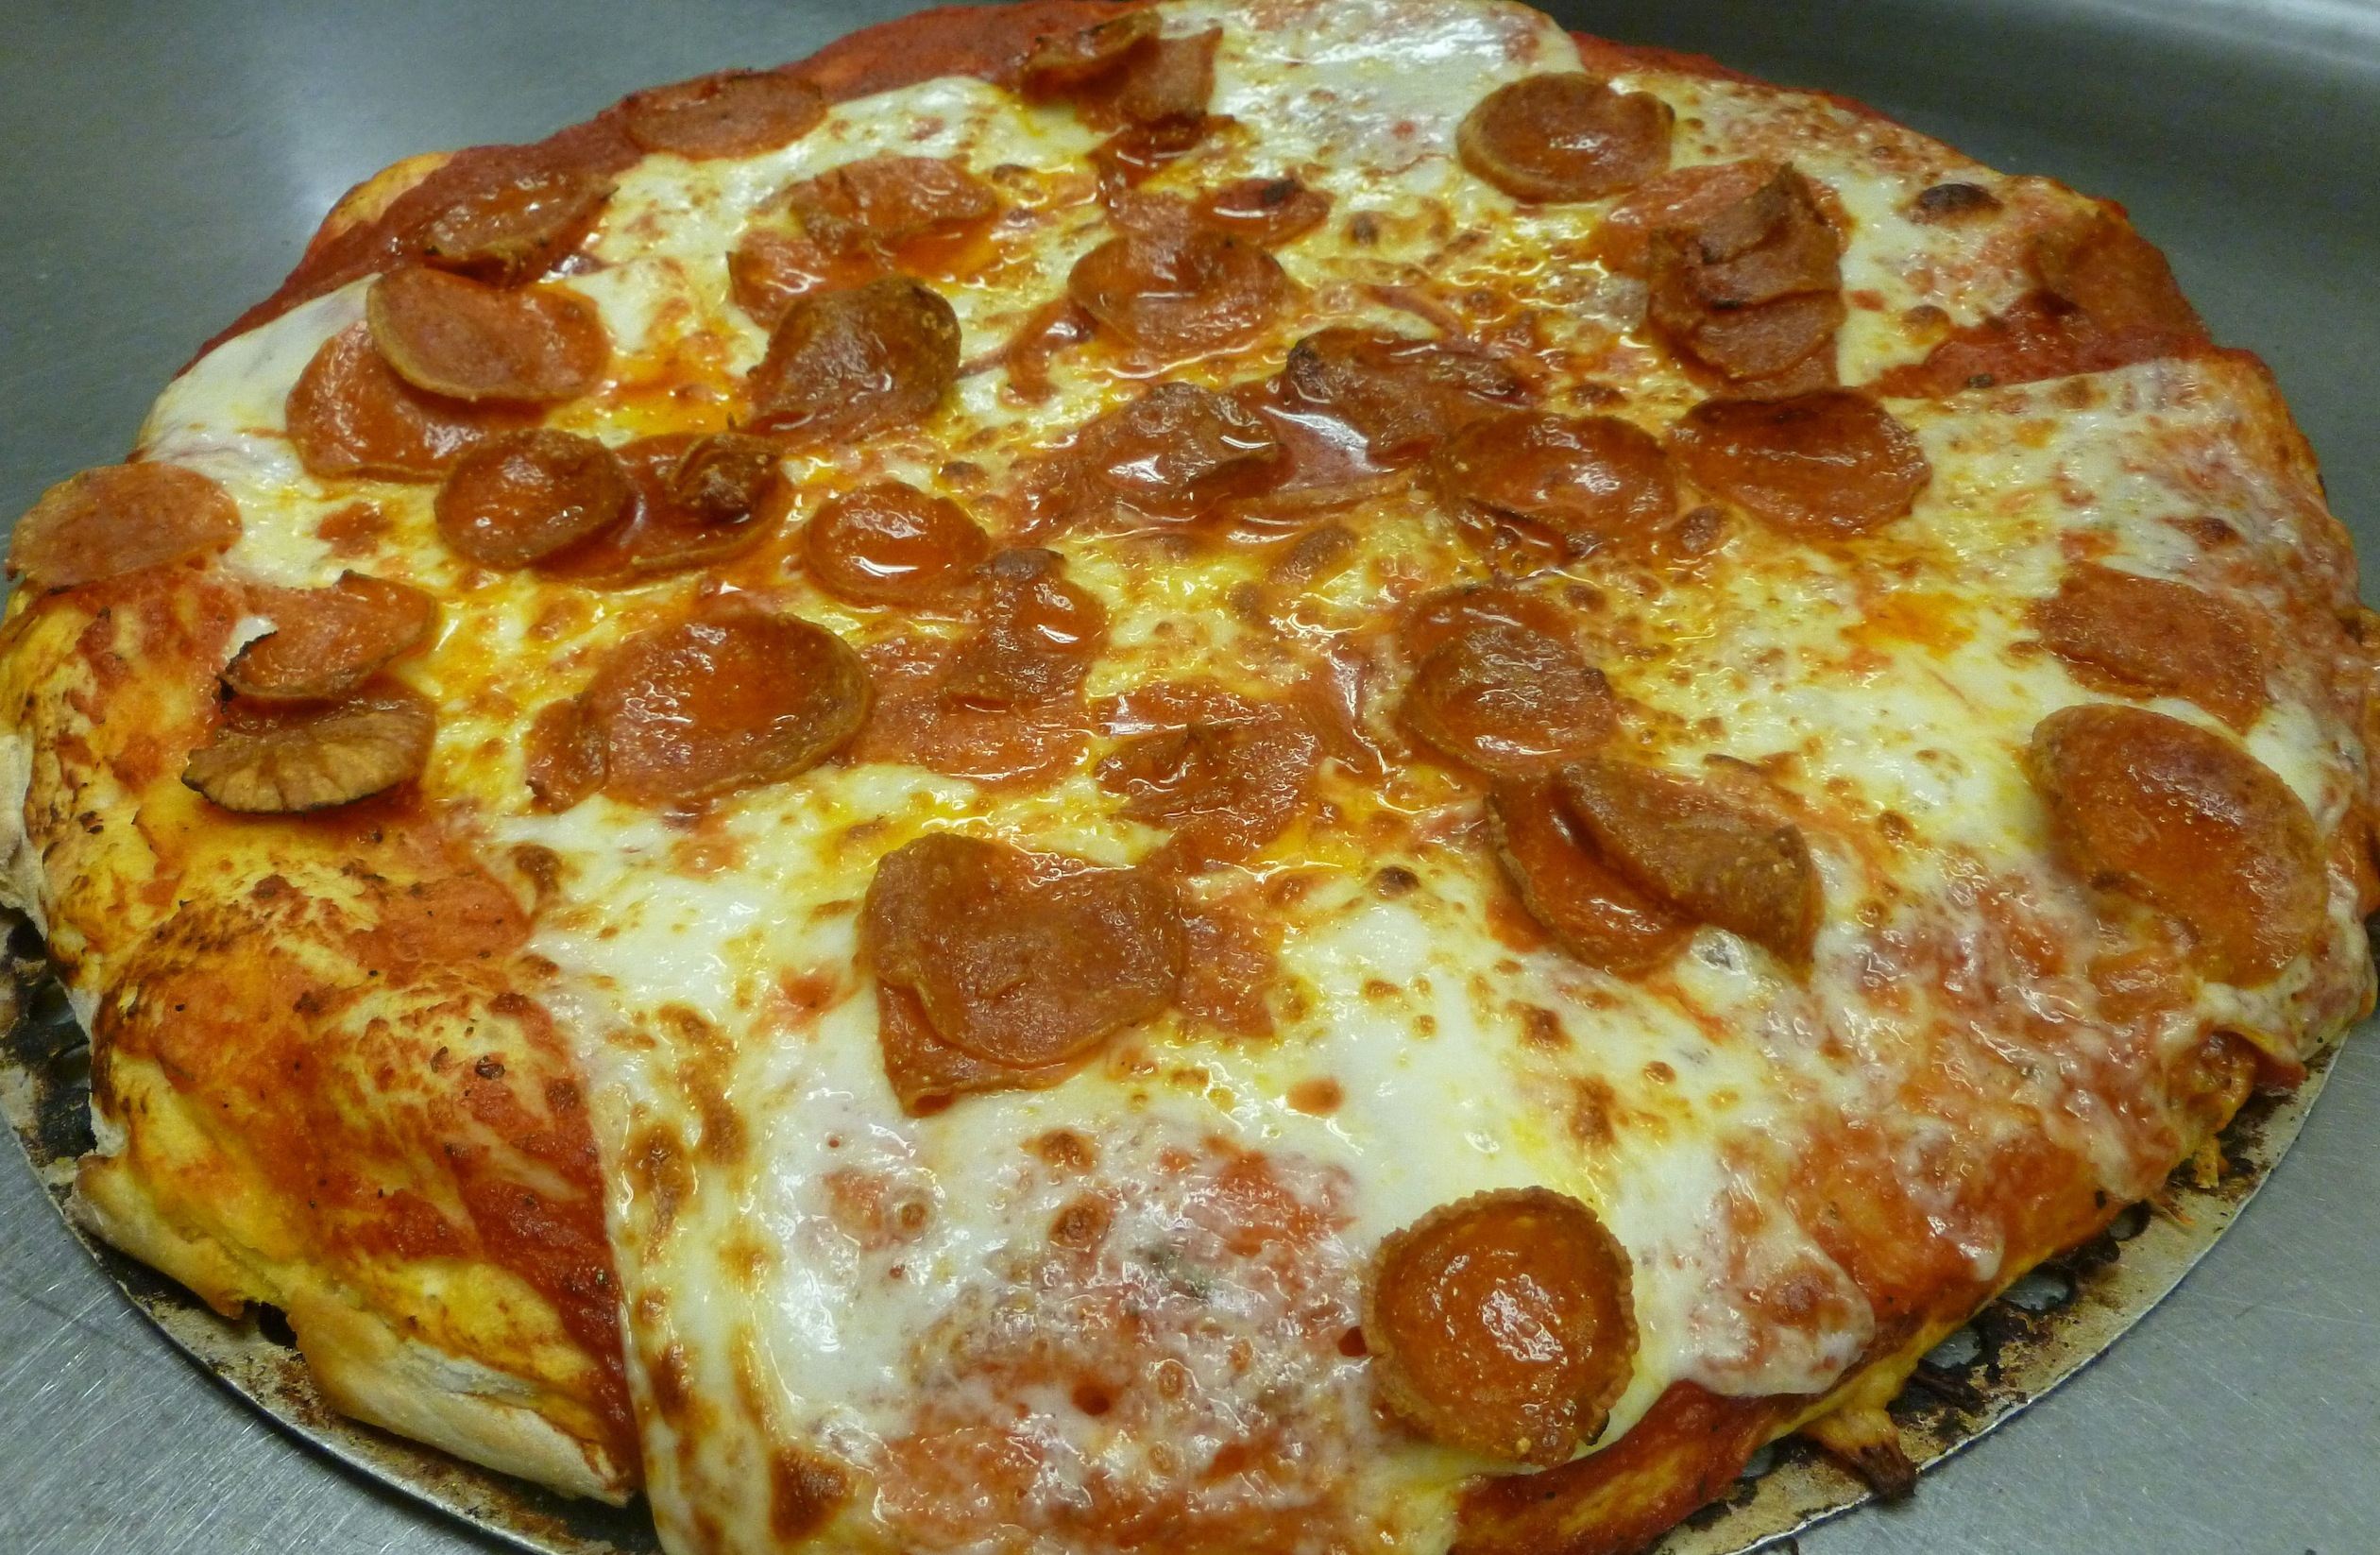 $12 LG 1-topping *ONLINE ONLY SPECIAL*